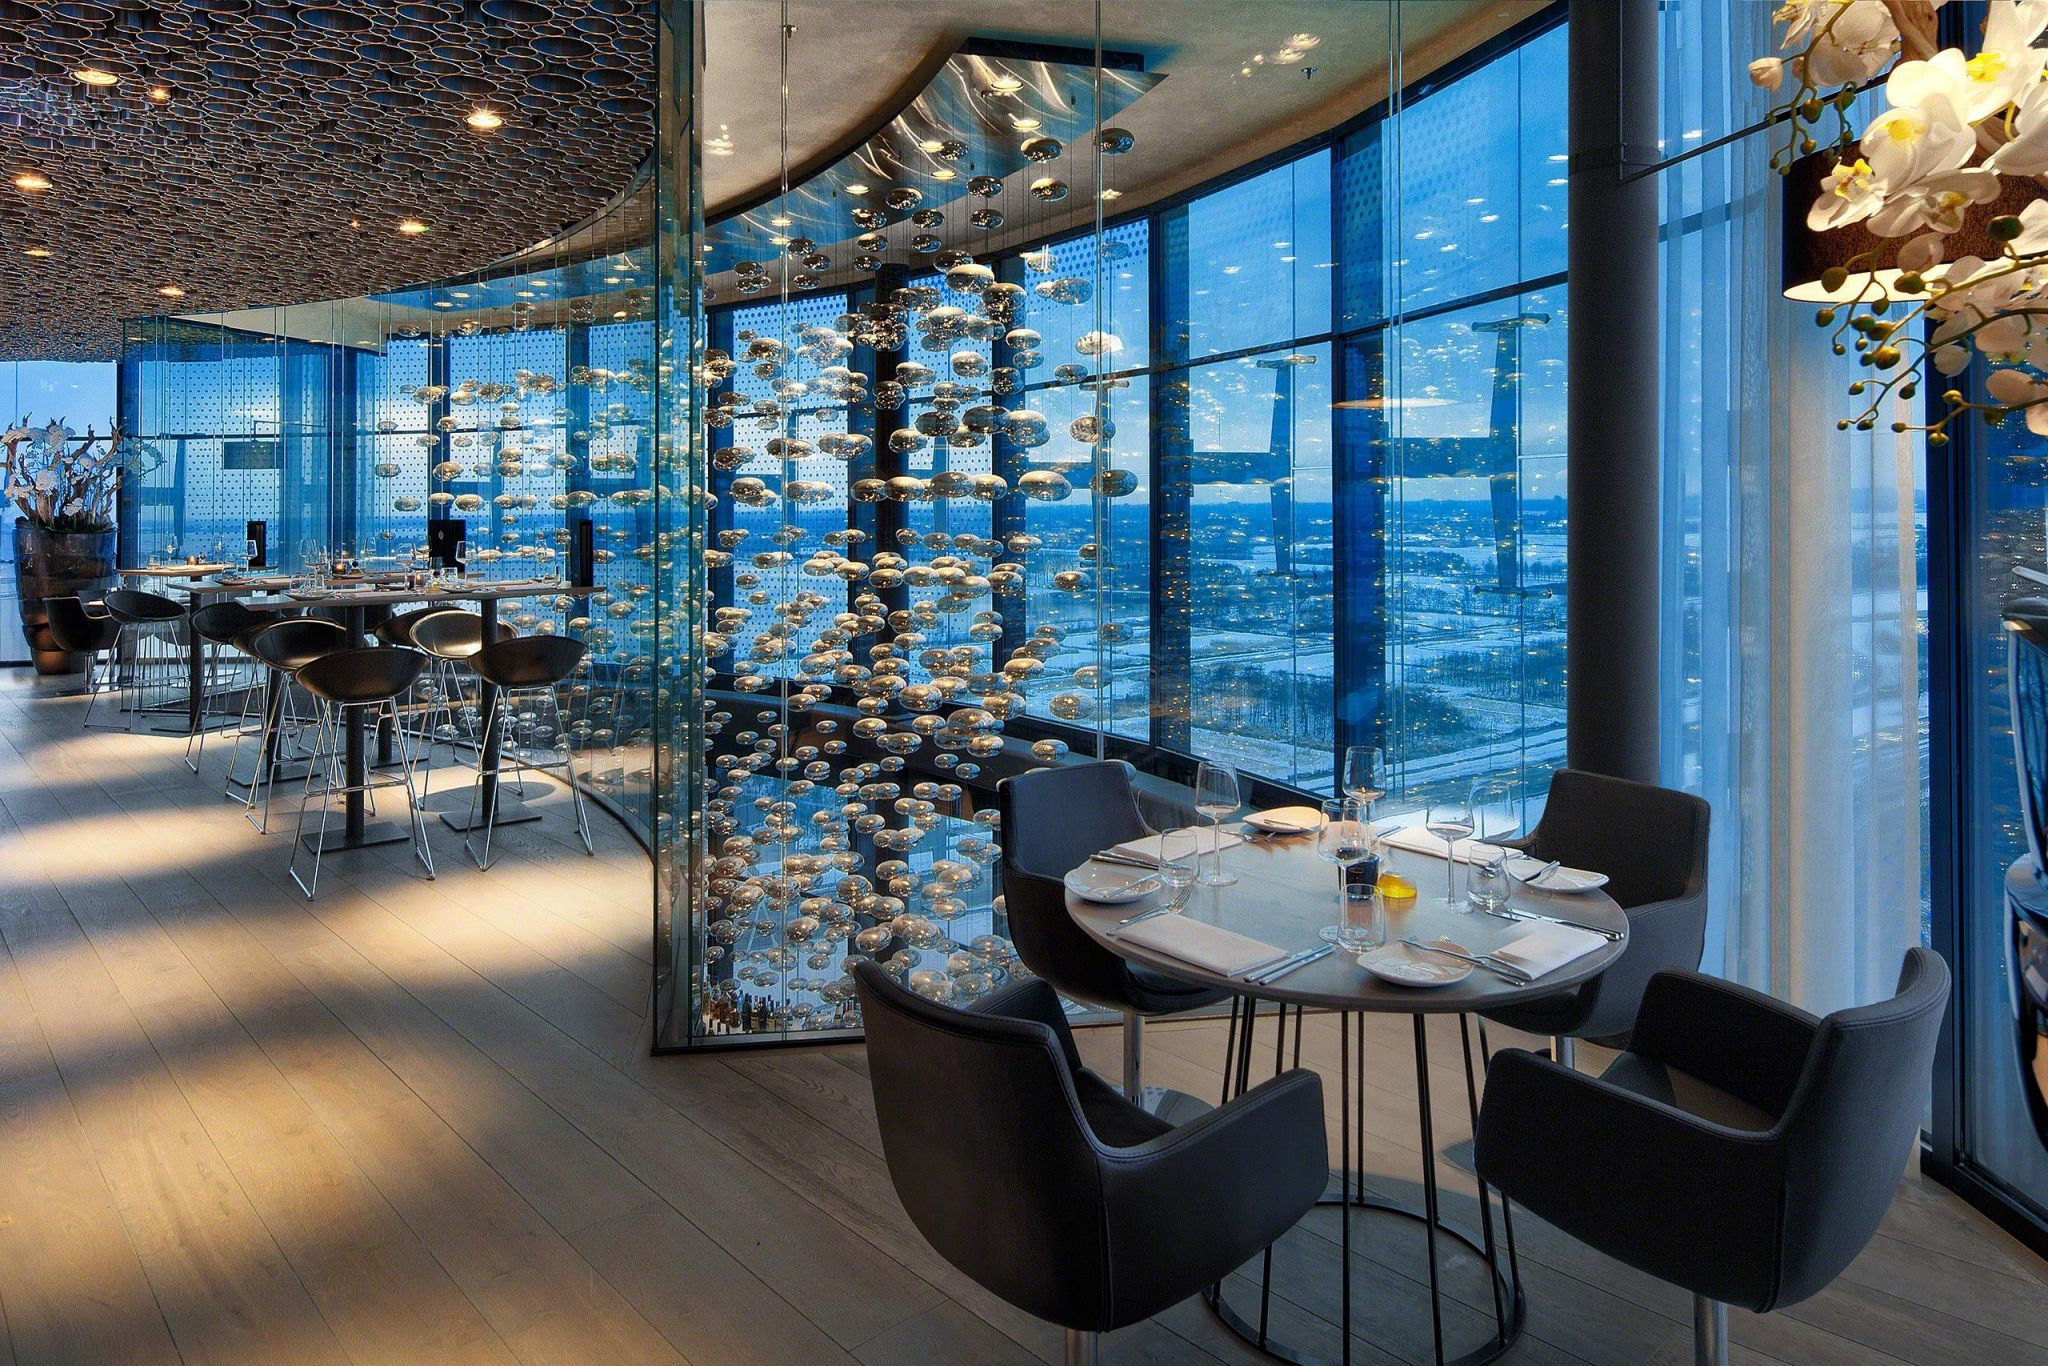 Dream chandelier seen from the luxurious sky restaurant, with a view of the bar below.